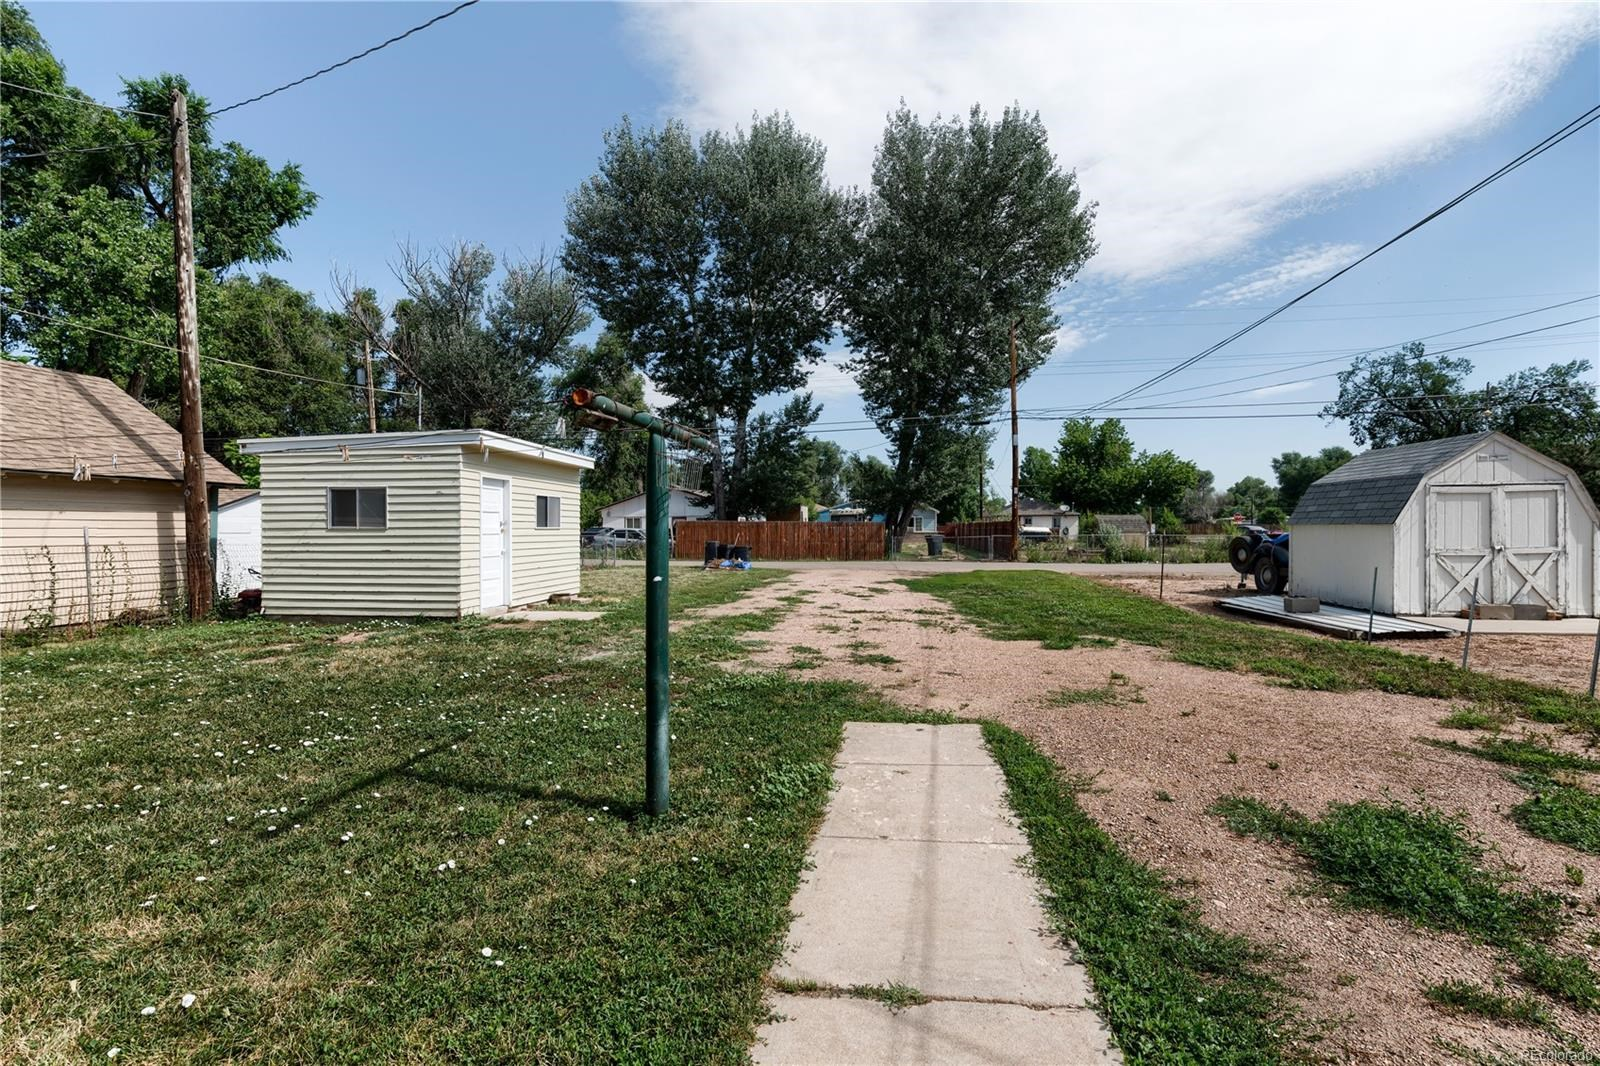 MLS# 2854624 - 19 - 2003 6th Street, Greeley, CO 80631